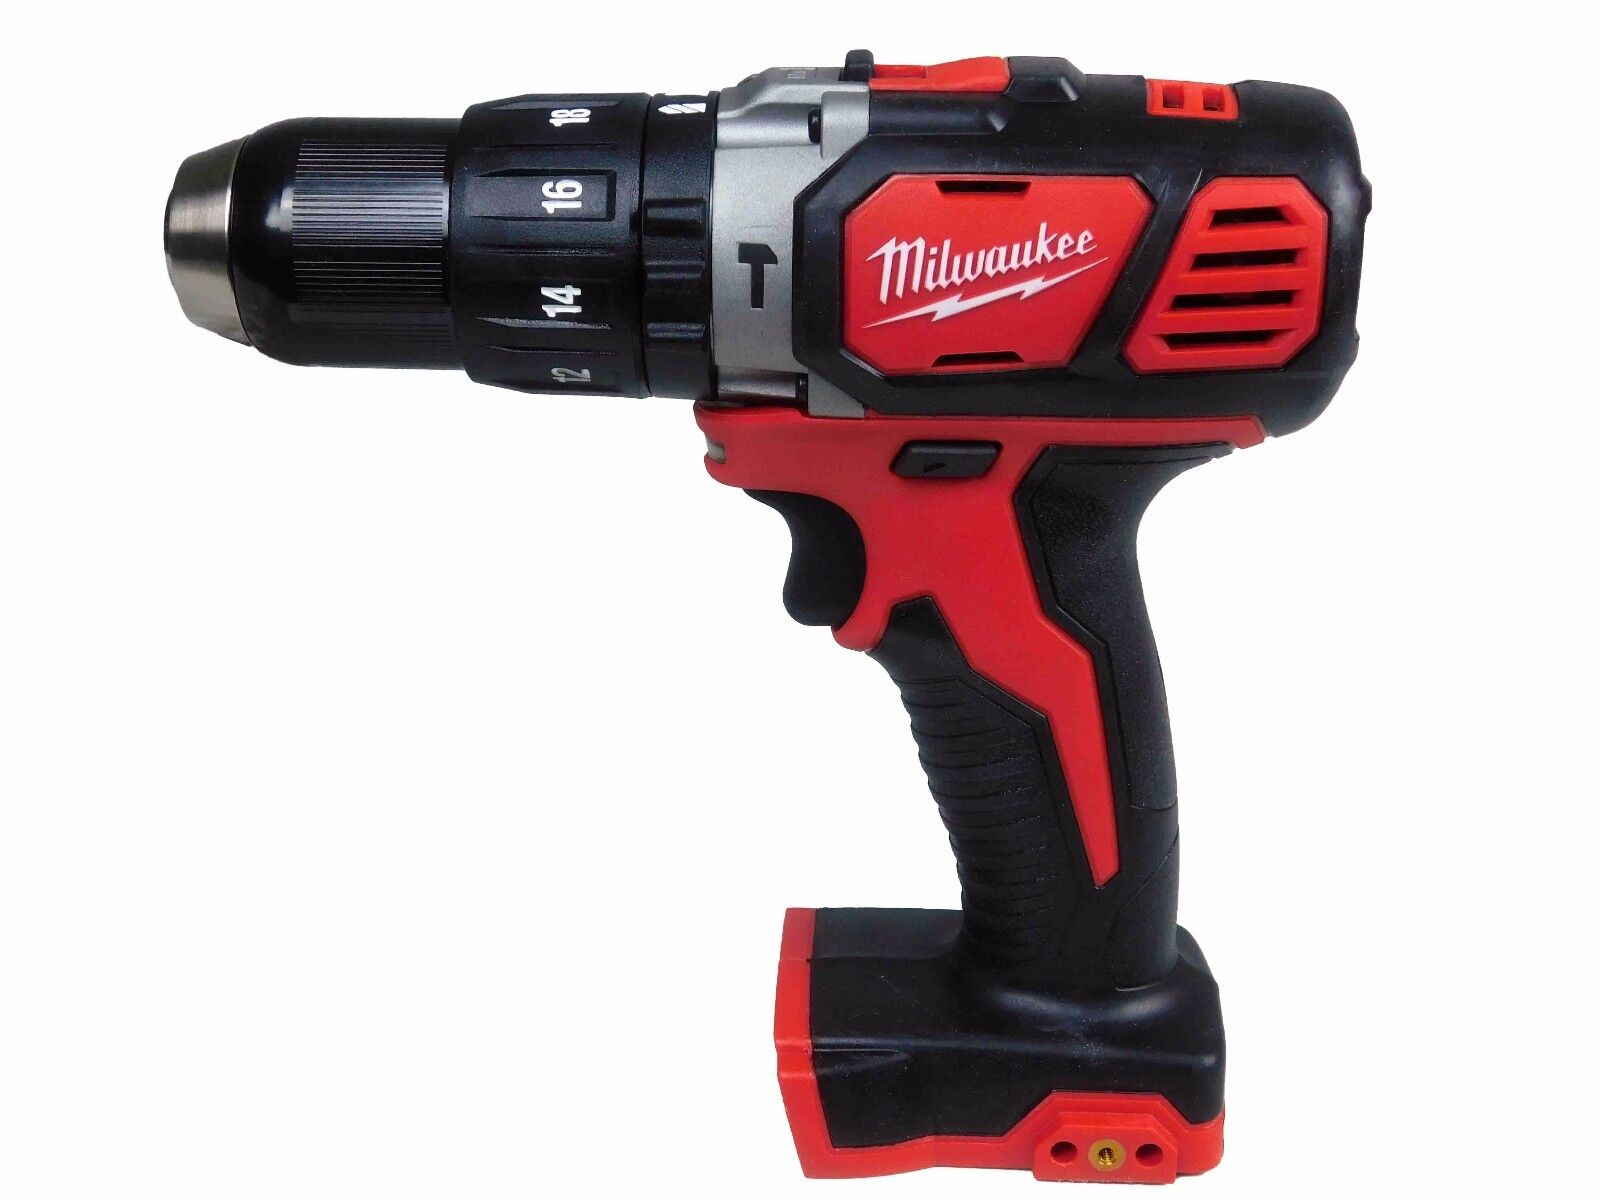 NEW Milwaukee 2607-20 M18™ Compact 1/2